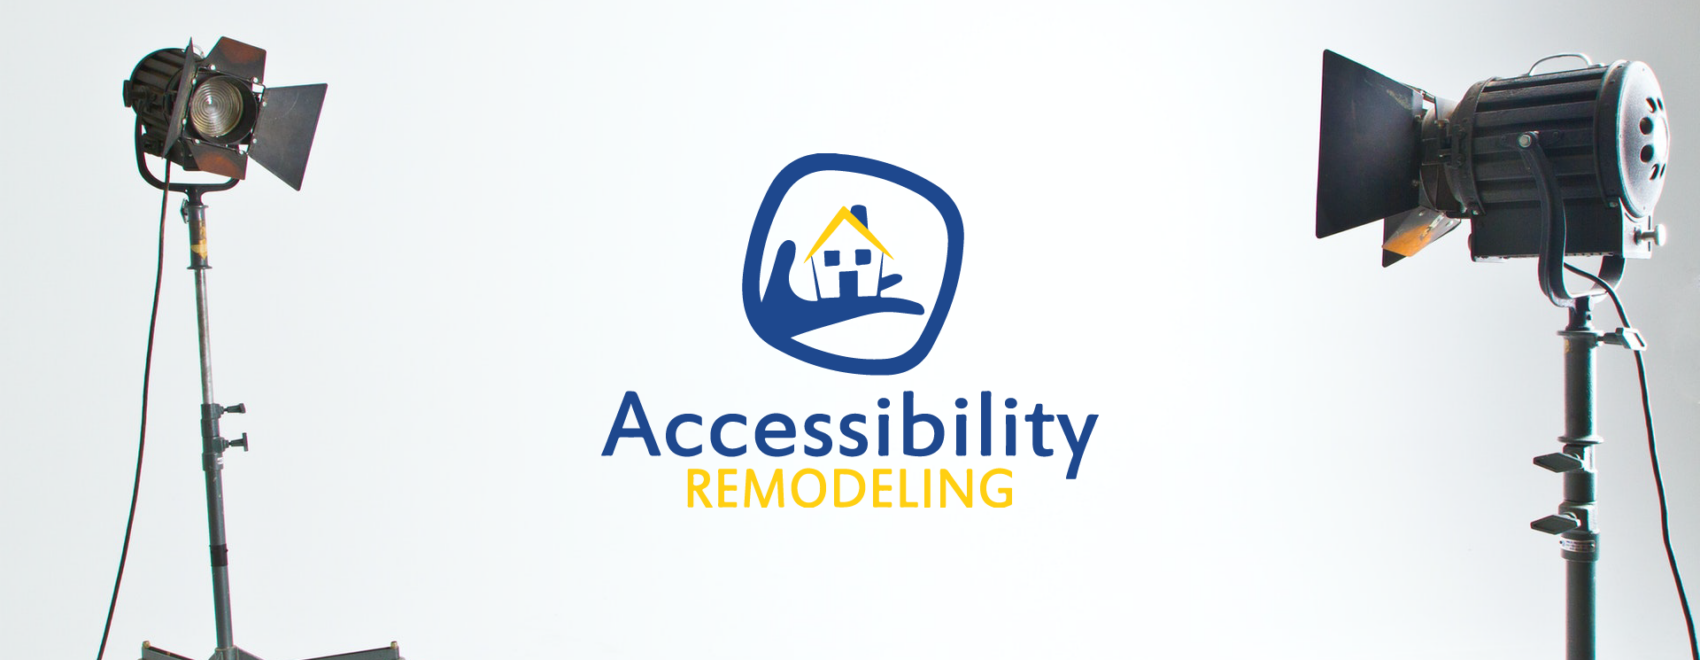 Two spotlights focused on the Accessibility Remodeling logo